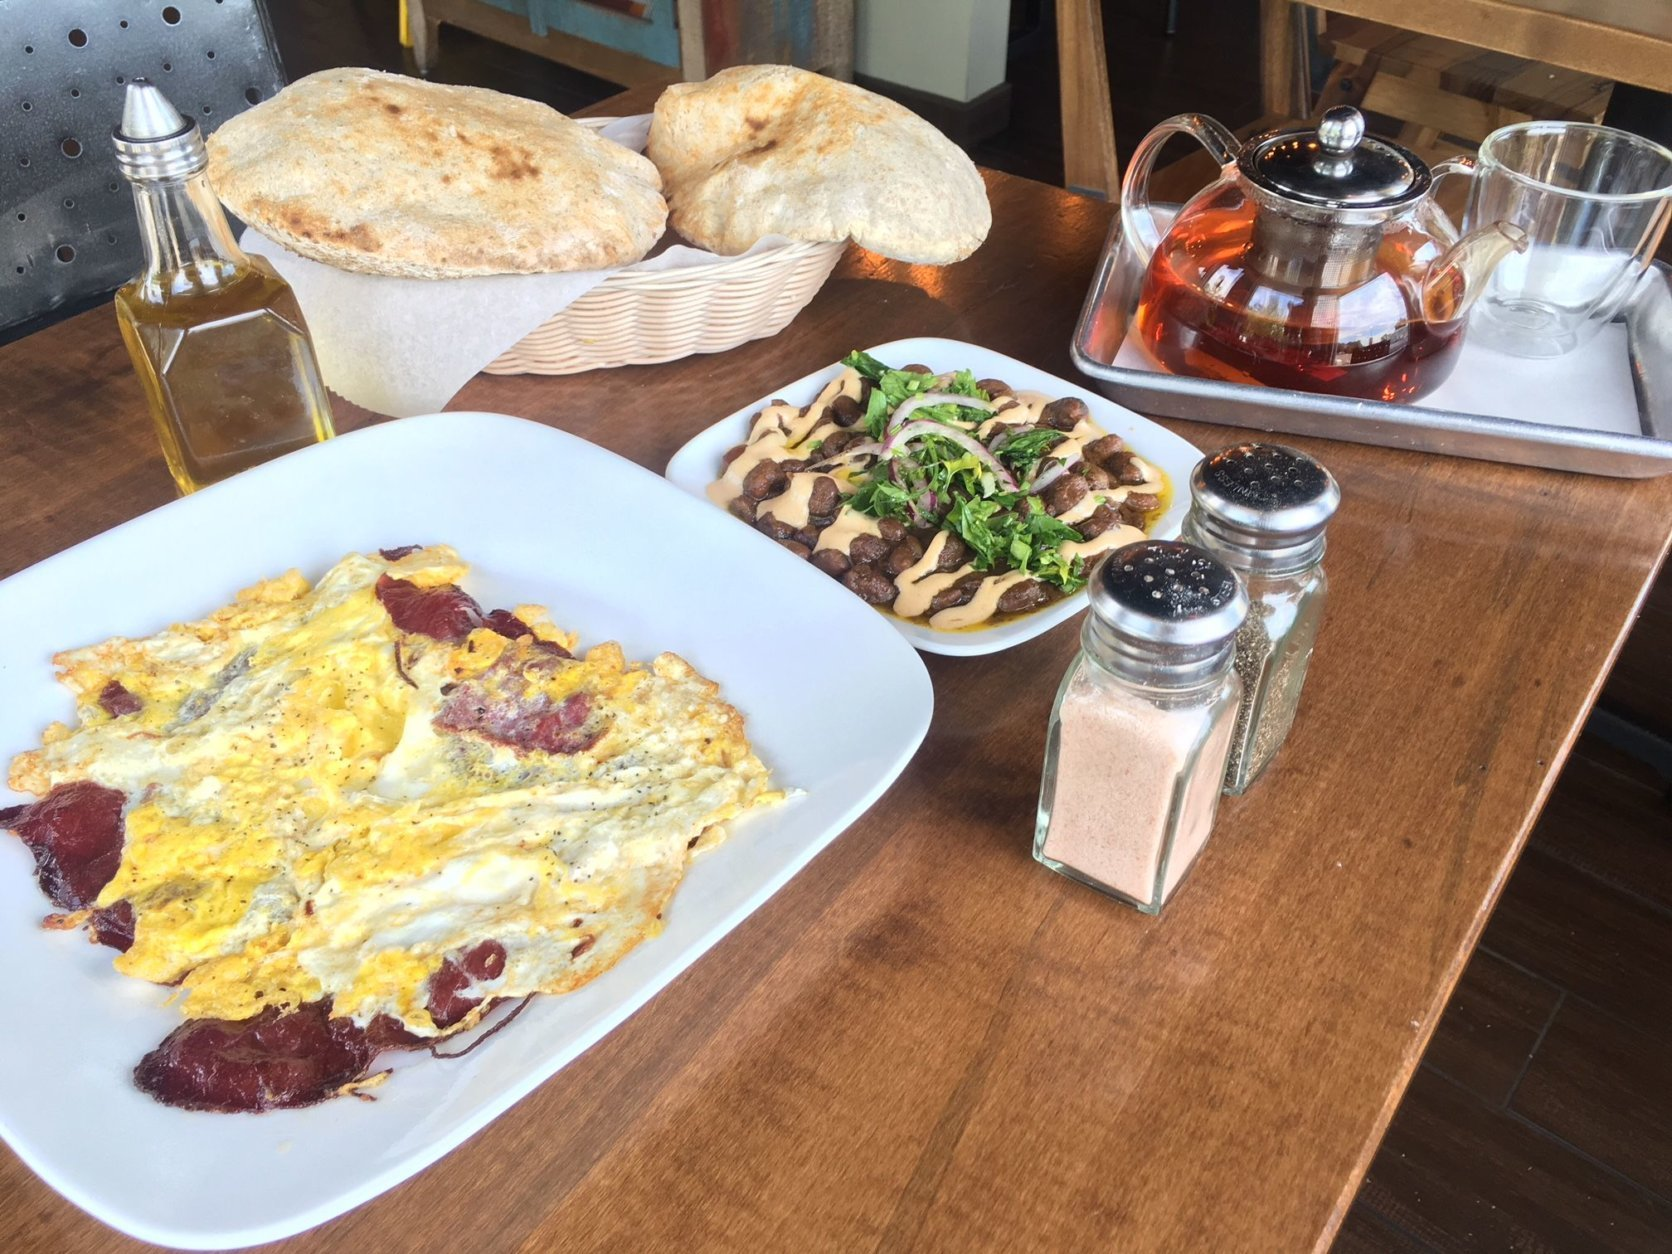 The breakfast spread at Fava Pot, including ful medames, basturma and eggs, and fresh-baked aish baladi. (WTOP/Noah Frank)